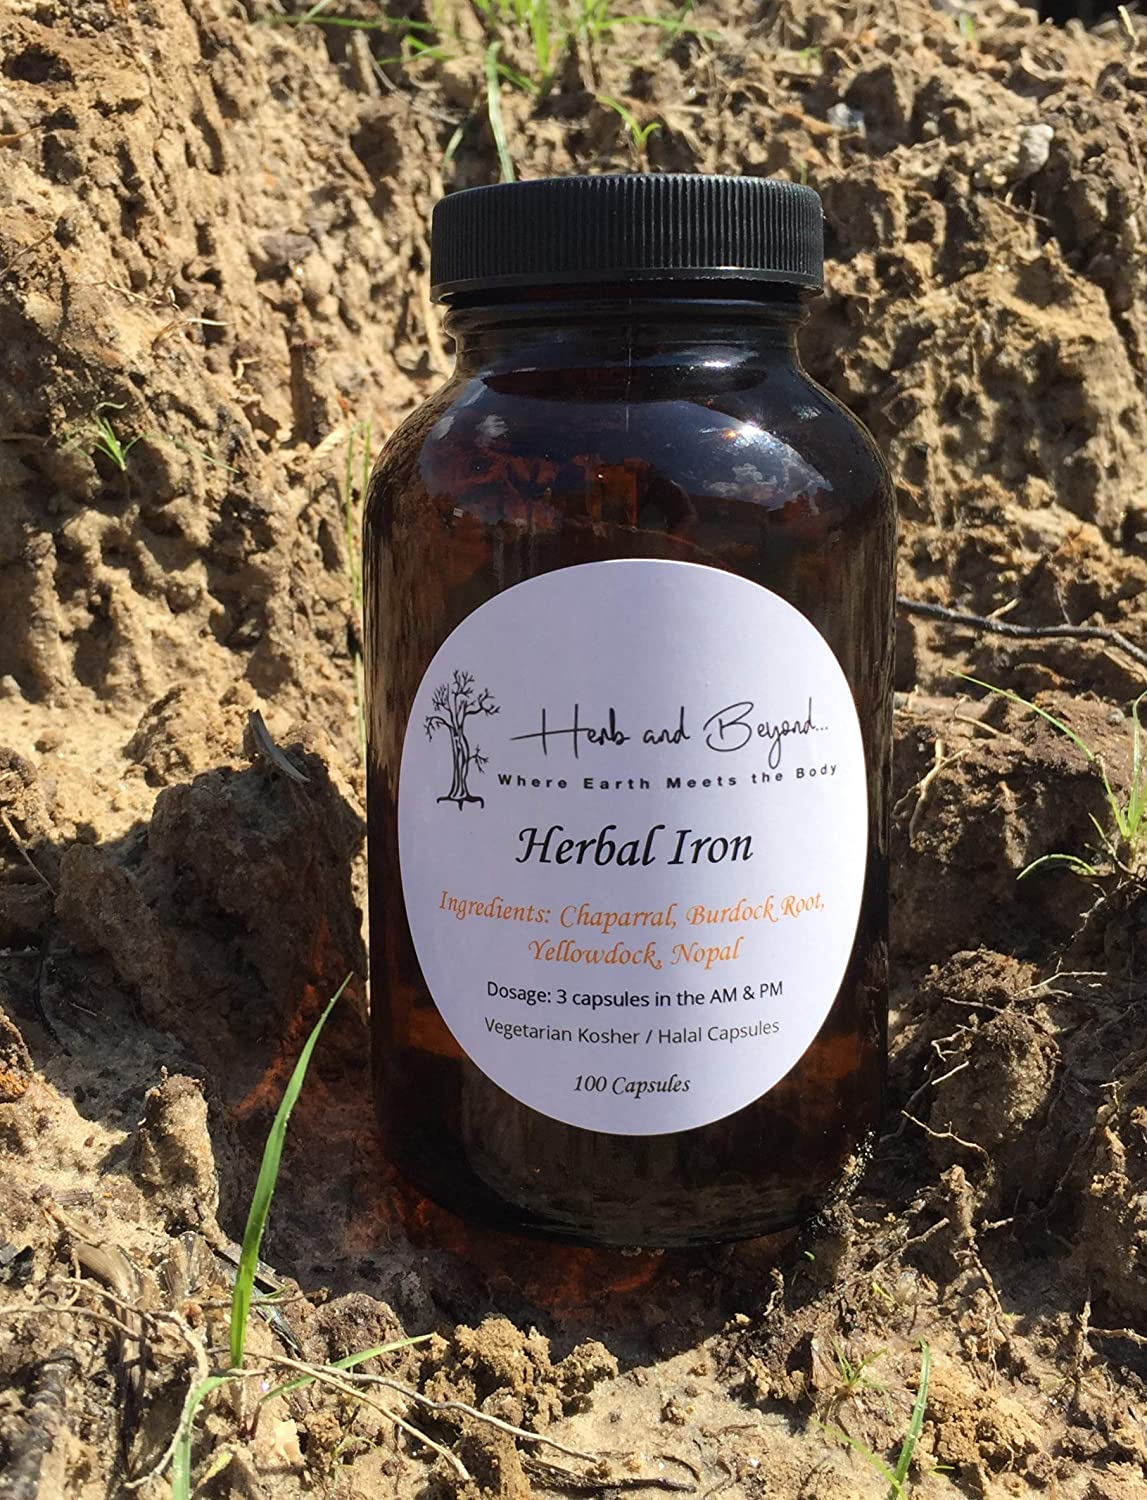 (Dr Sebi Inspired) - Herbal Iron / 100% Natural/No Chemicals / 100 Capsules